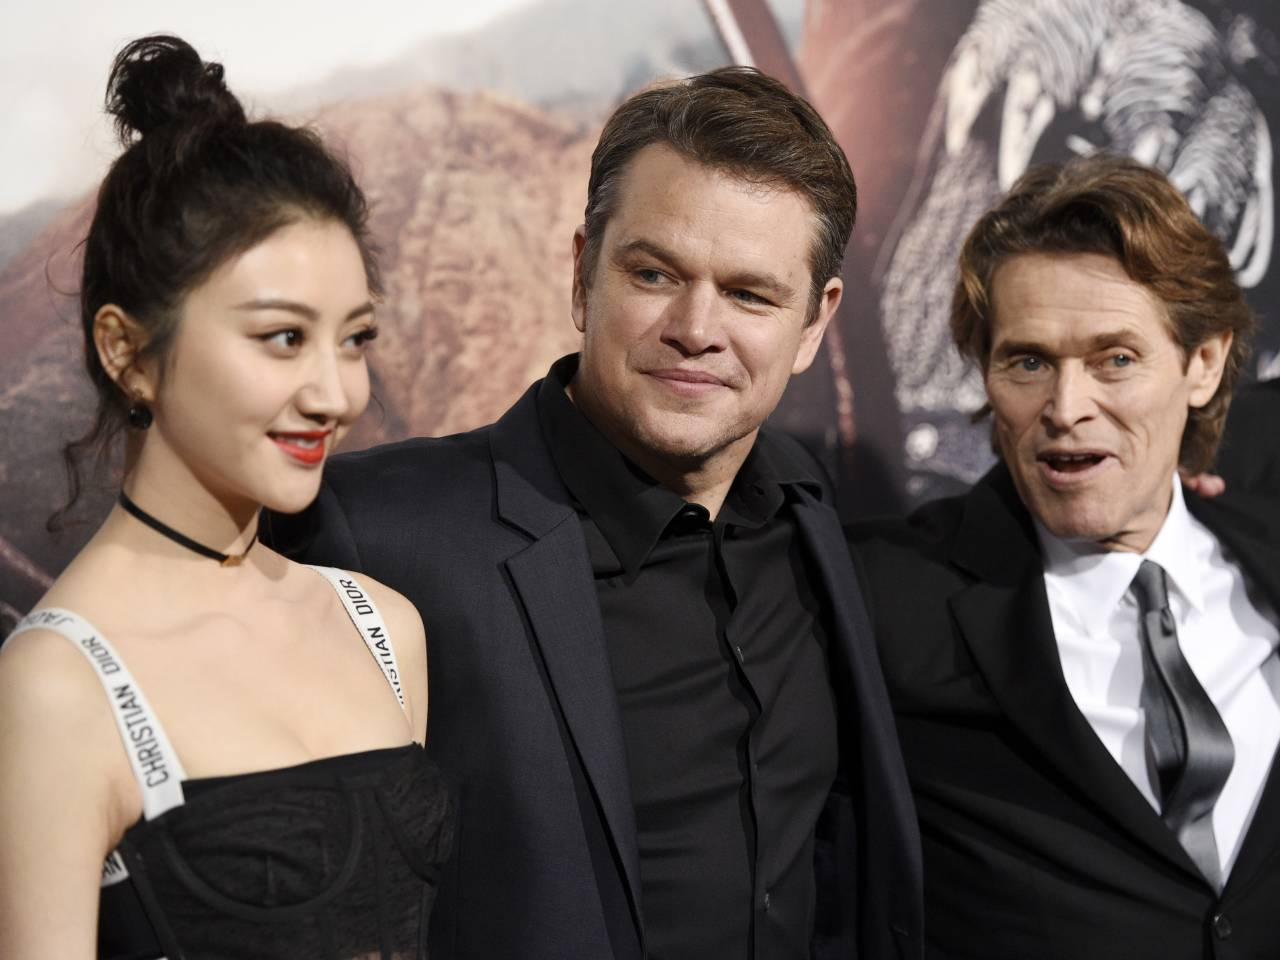 Matt Damon defends 'The Great Wall' against claims of whitewashing